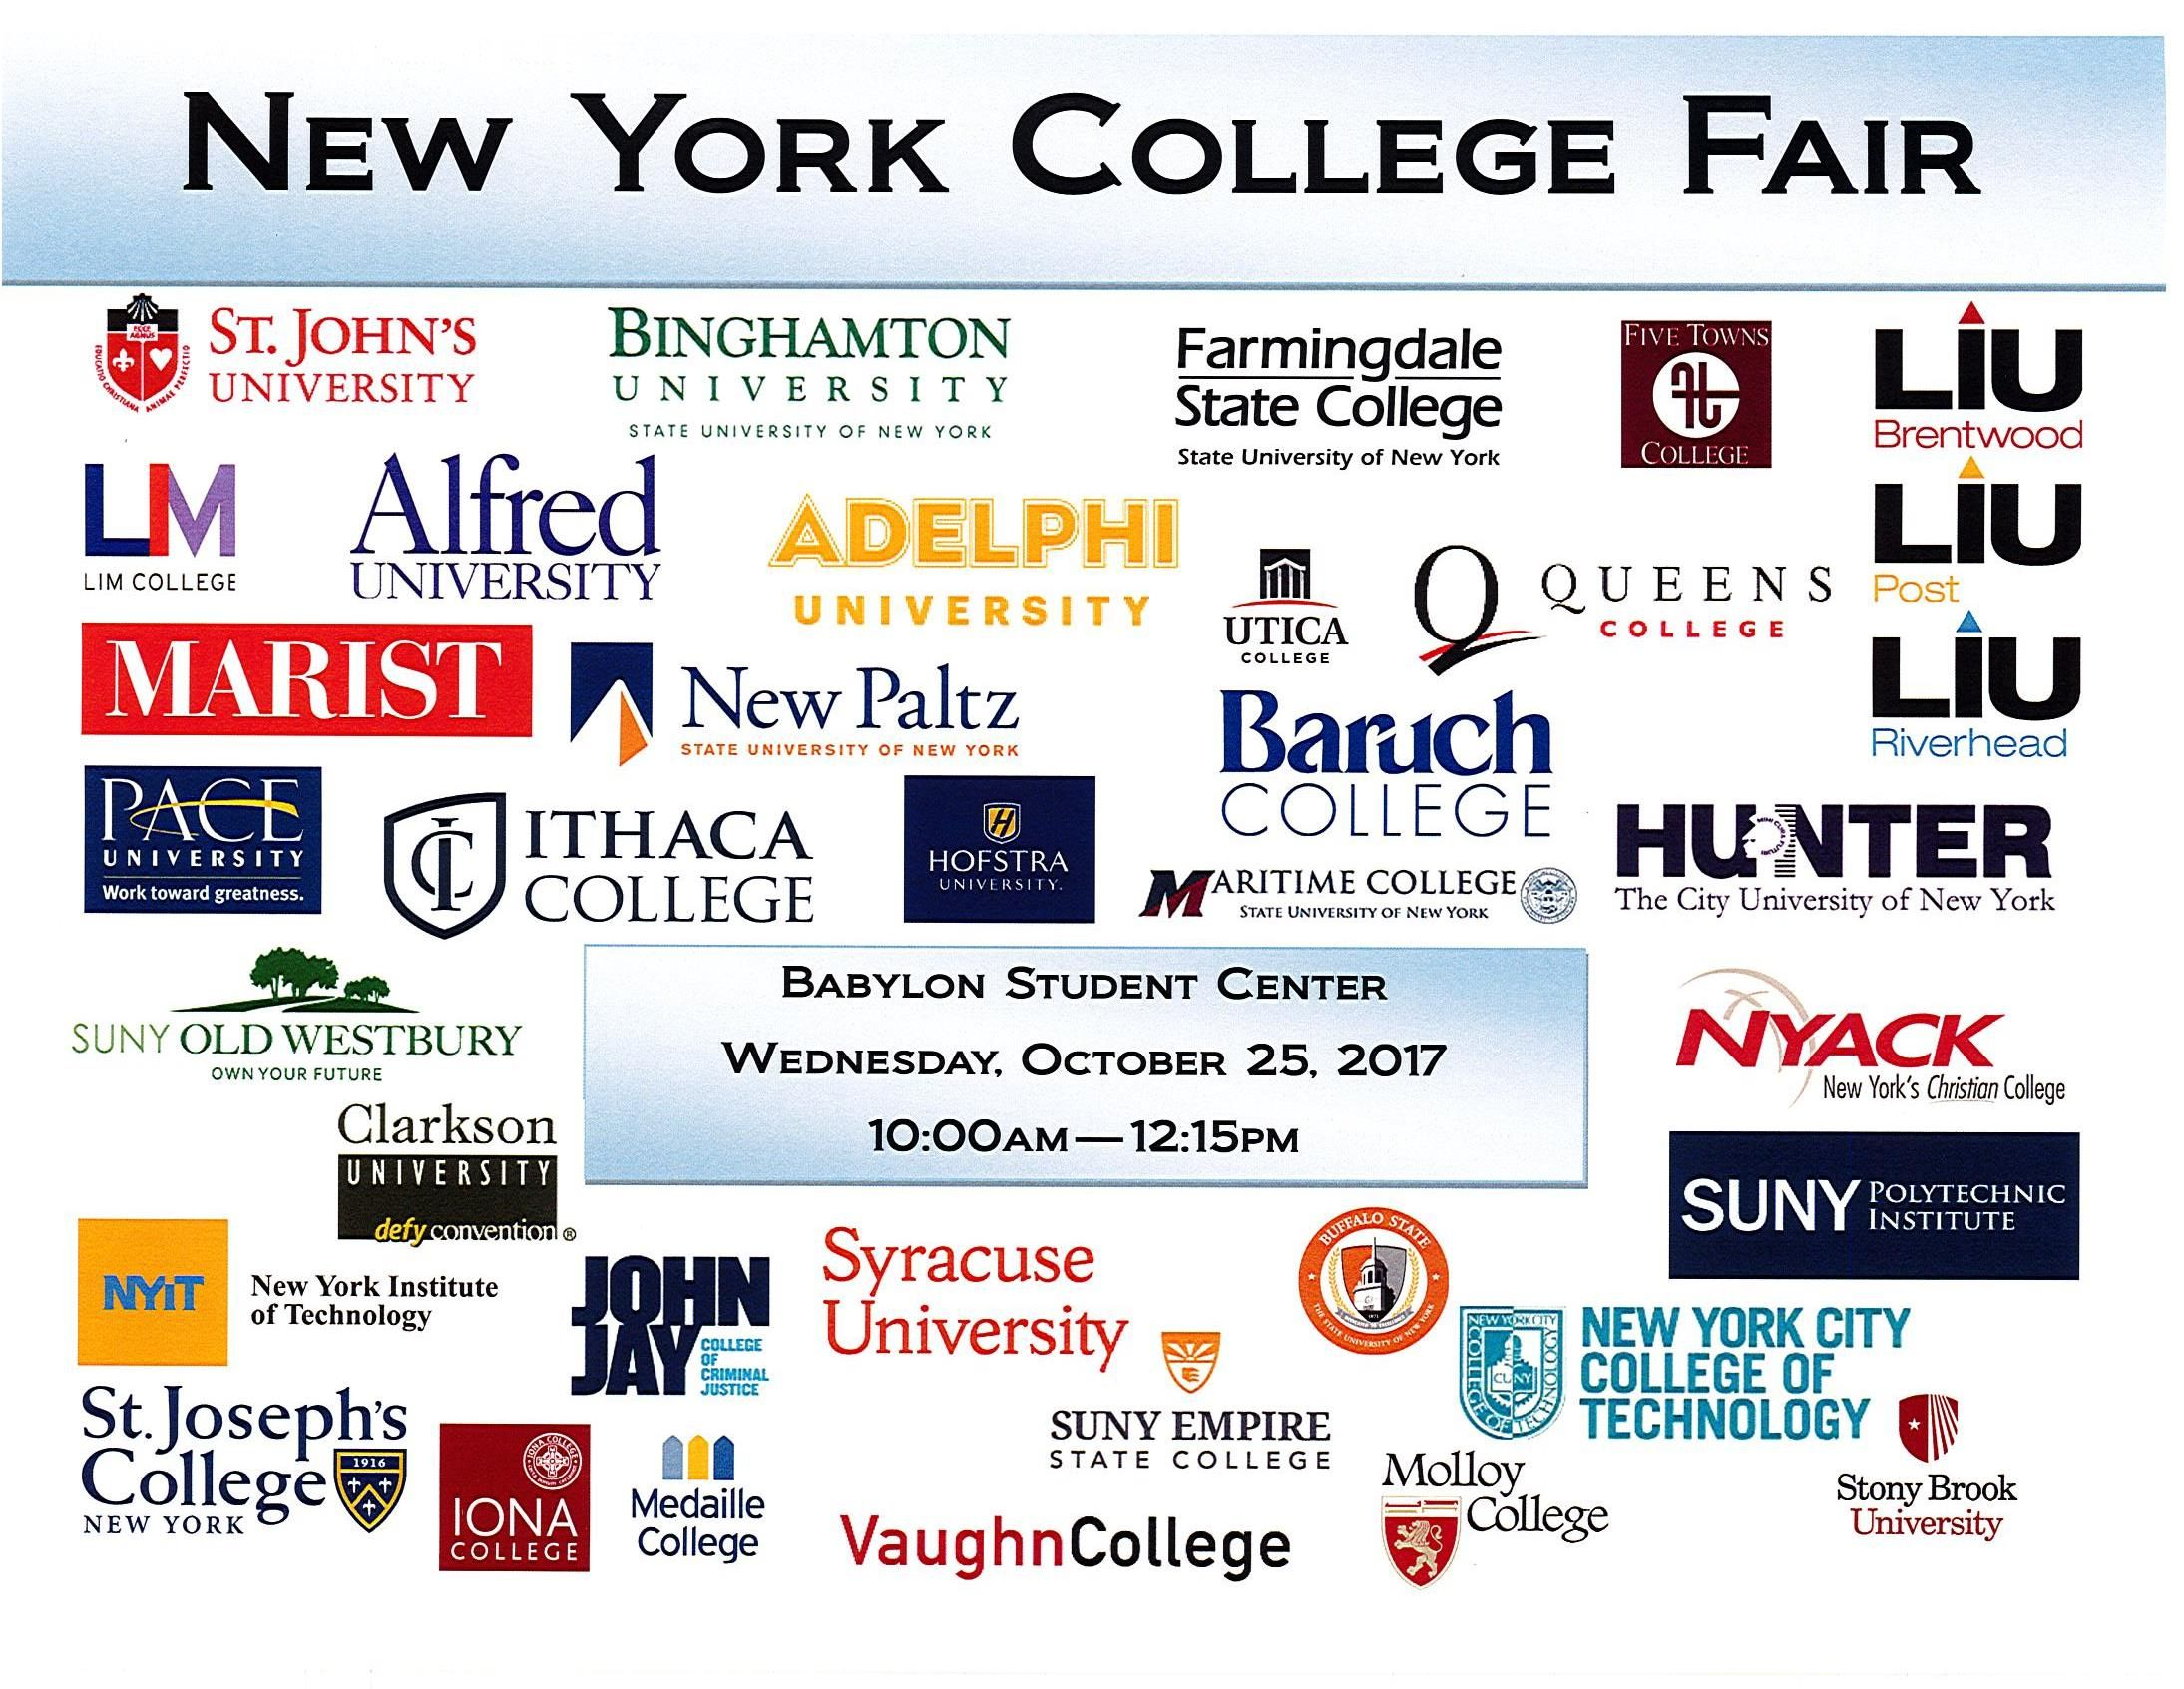 sccc ammerman campus map 10 25 17 New York College Fair At Suffolk County Community College sccc ammerman campus map